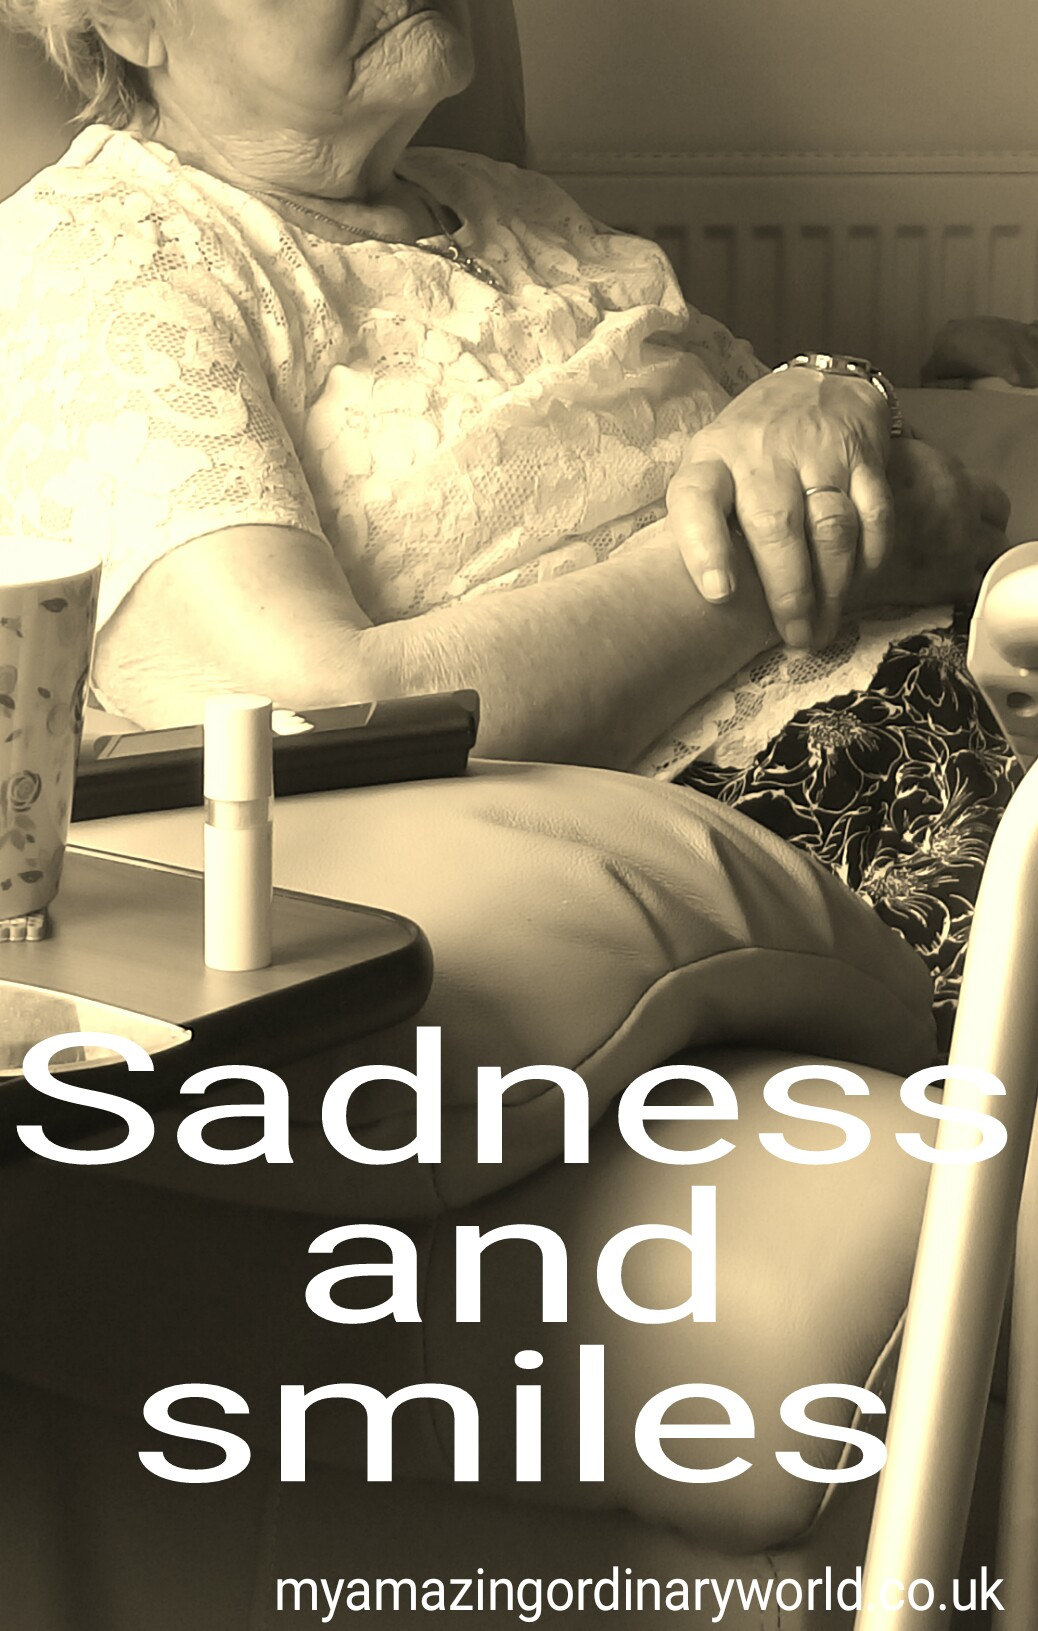 Sadness and smiles